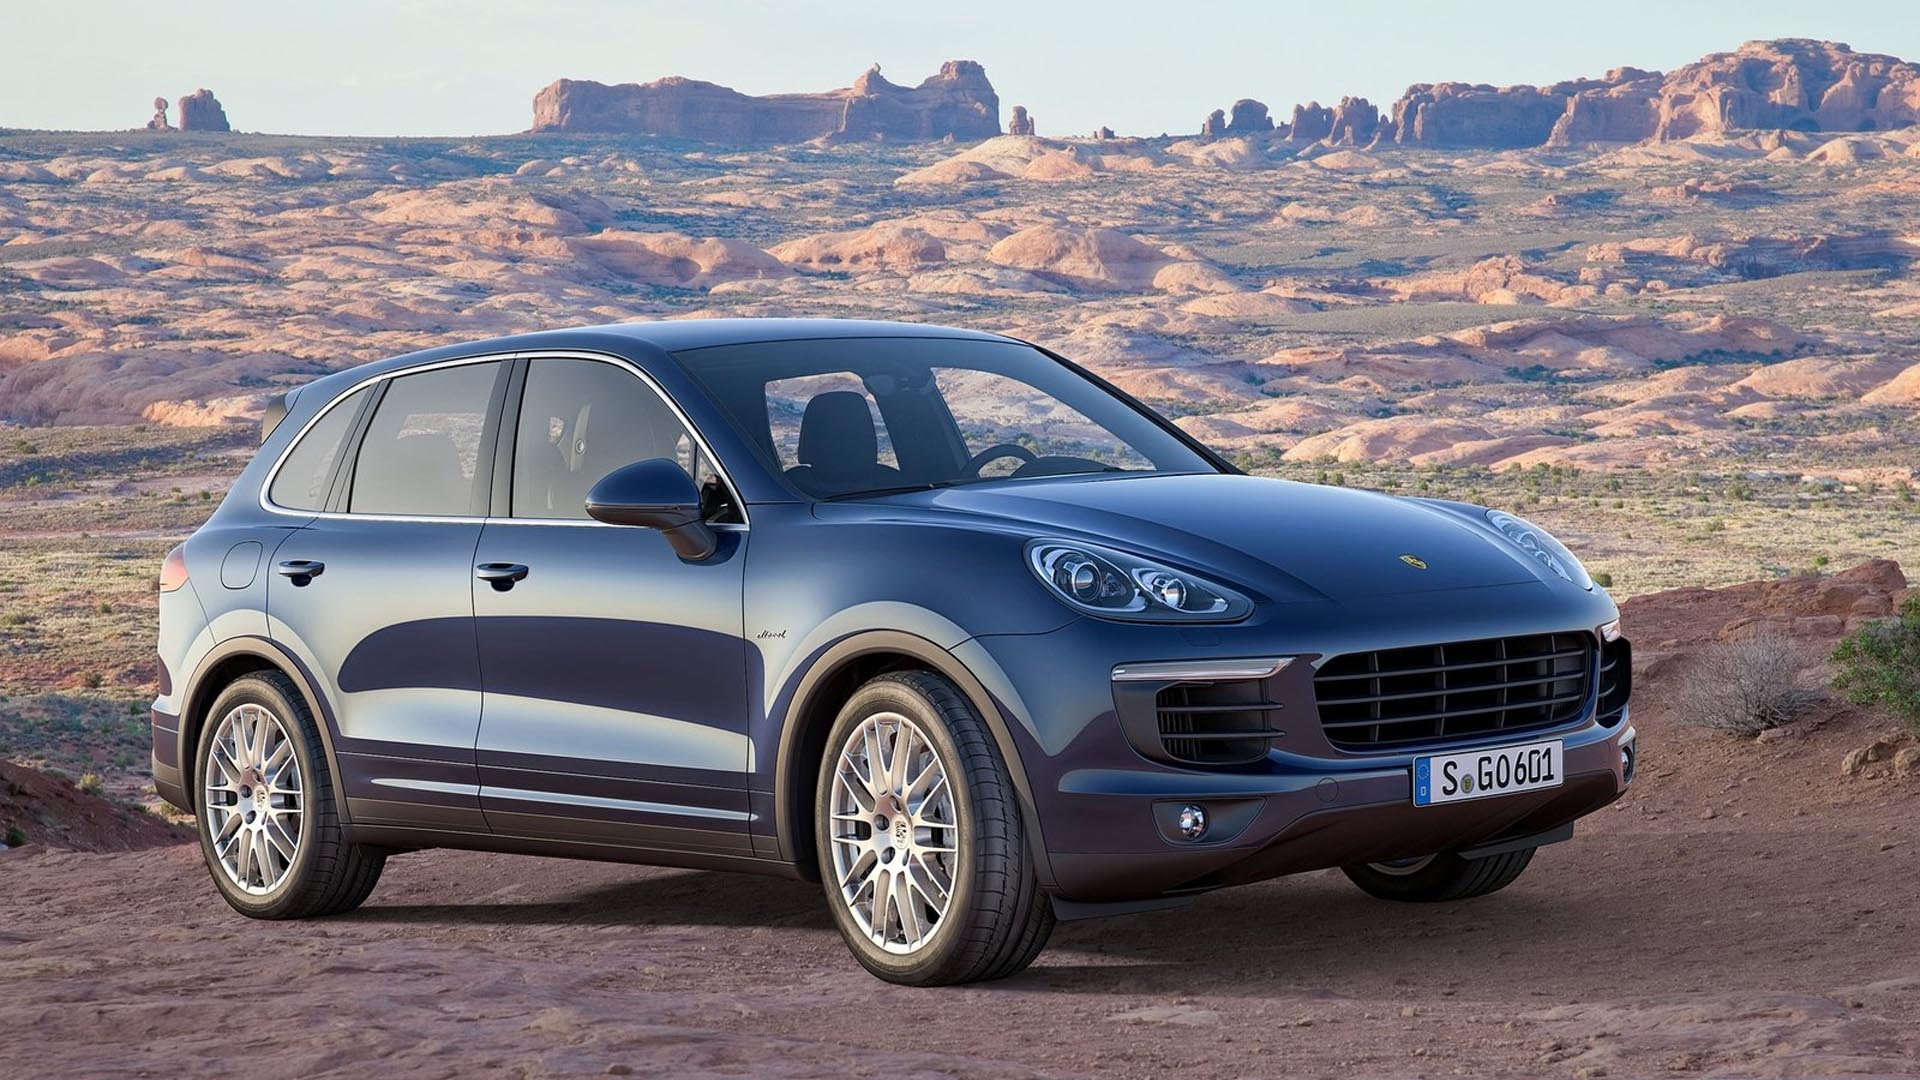 Porsche Cayenne Oil: Oil Type, Cost To Change, & How To Reset